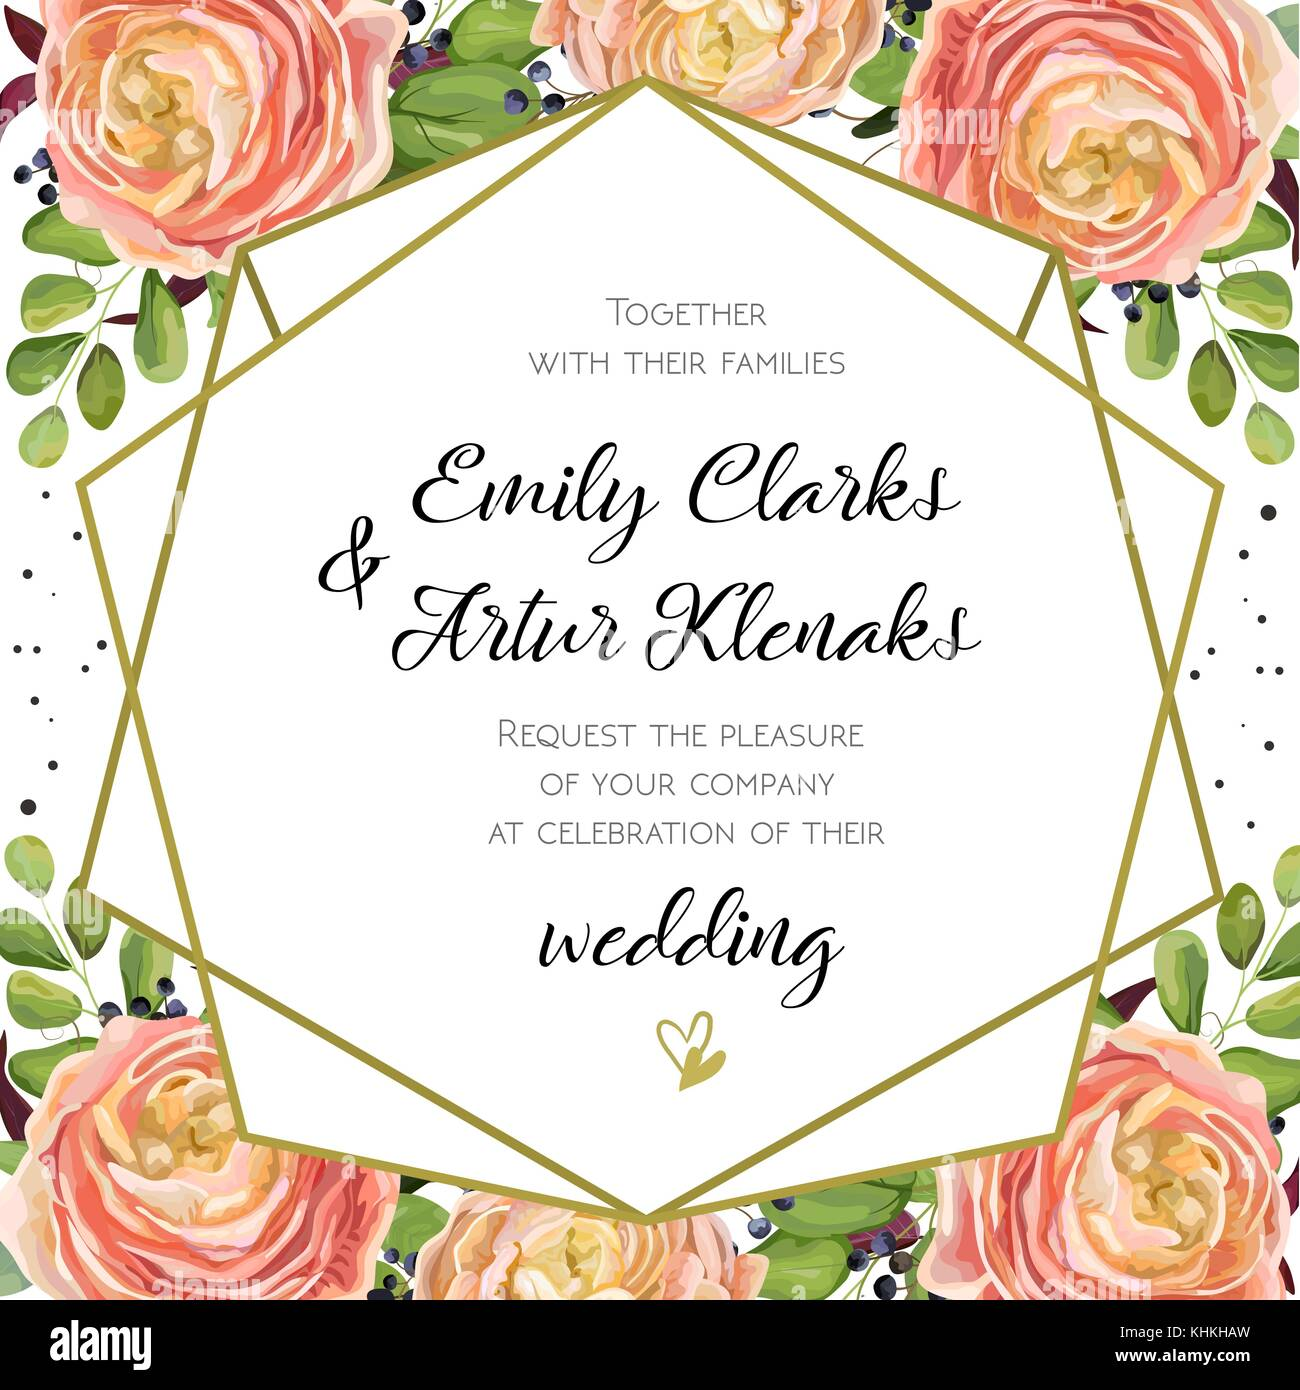 Wedding Invitation Floral Invite Card Design With Pink Peach Rose